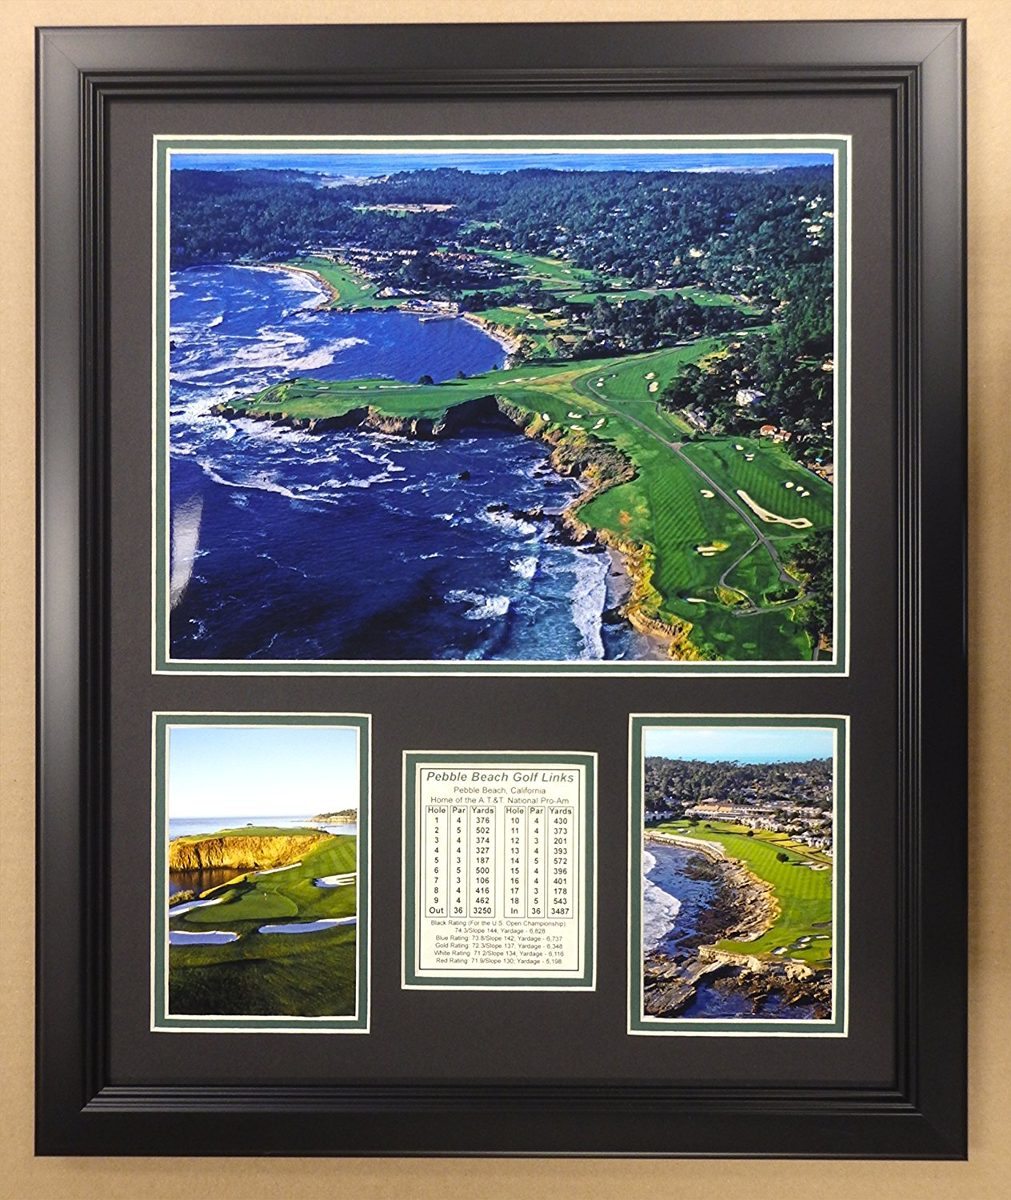 Campo De Golf Pebble Beach - Fotos Enmarcadas Dobles De 1 ...